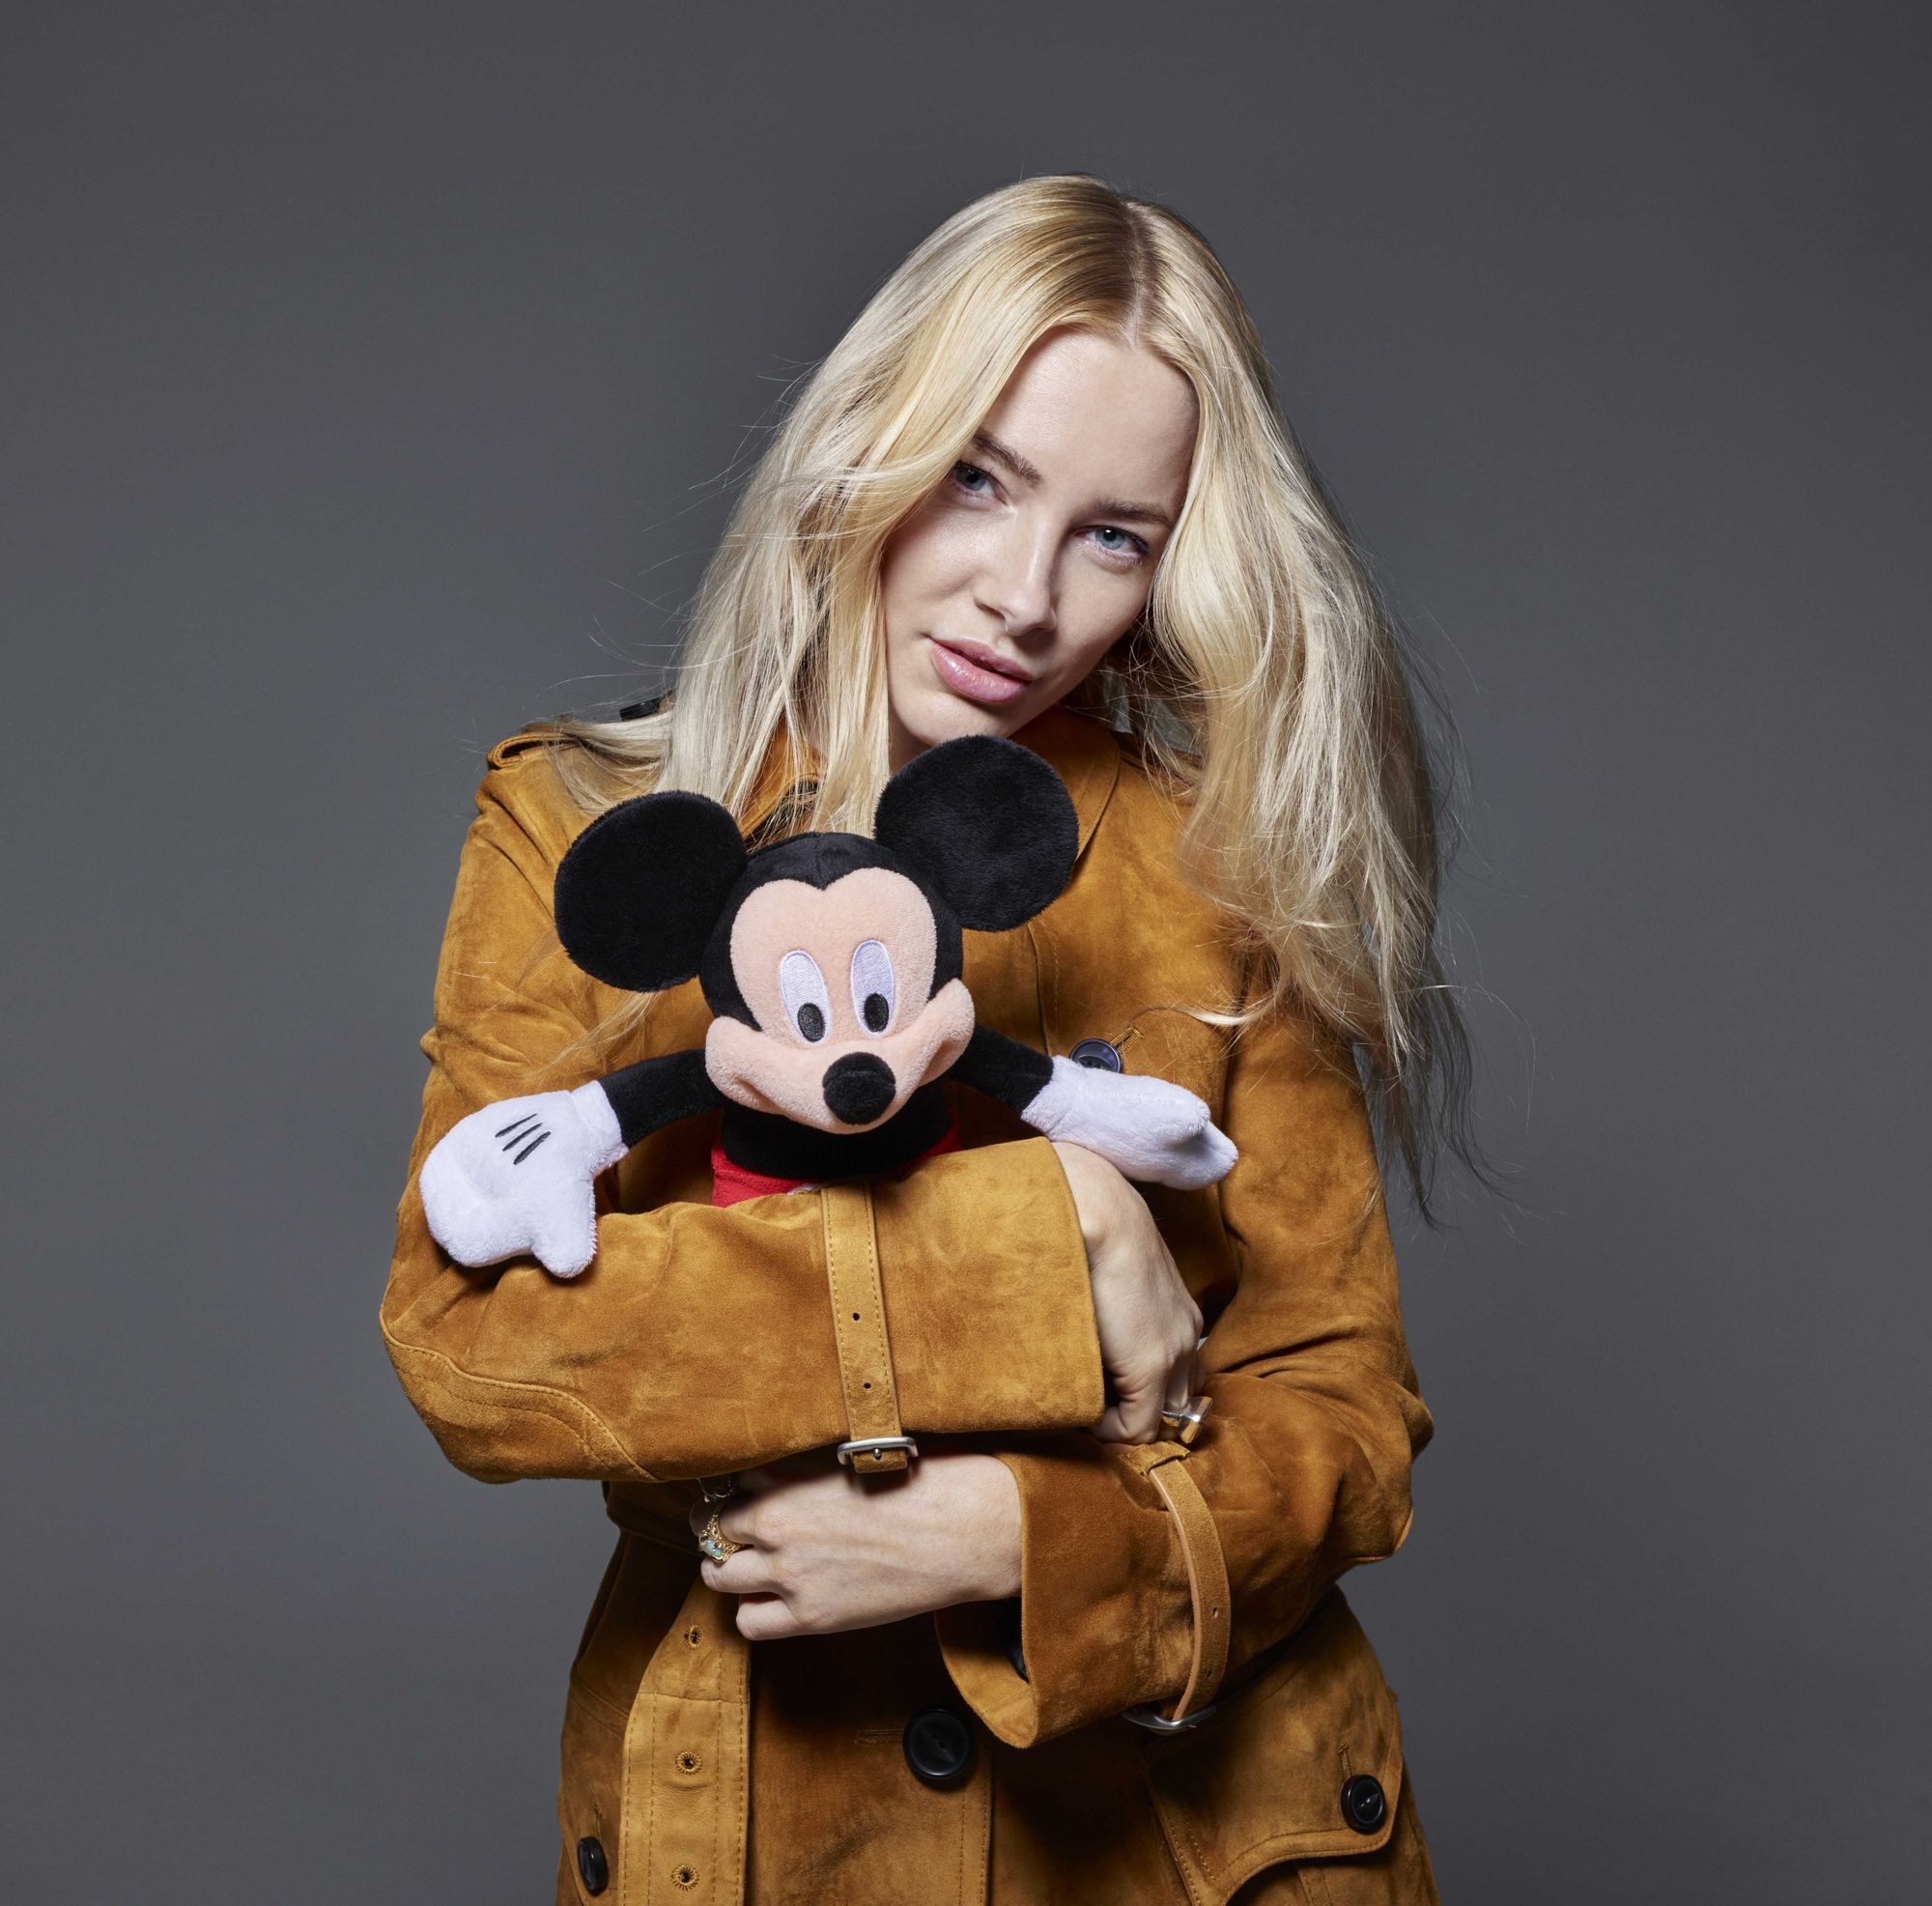 RANKIN HELPS CELEBRATE 90 YEARS OF  MICKEY MOUSE WITH KATE MOSS, LIV TYLER SERGEI POLUNIN AND HEIDI KLUM AMONGST OTHERS